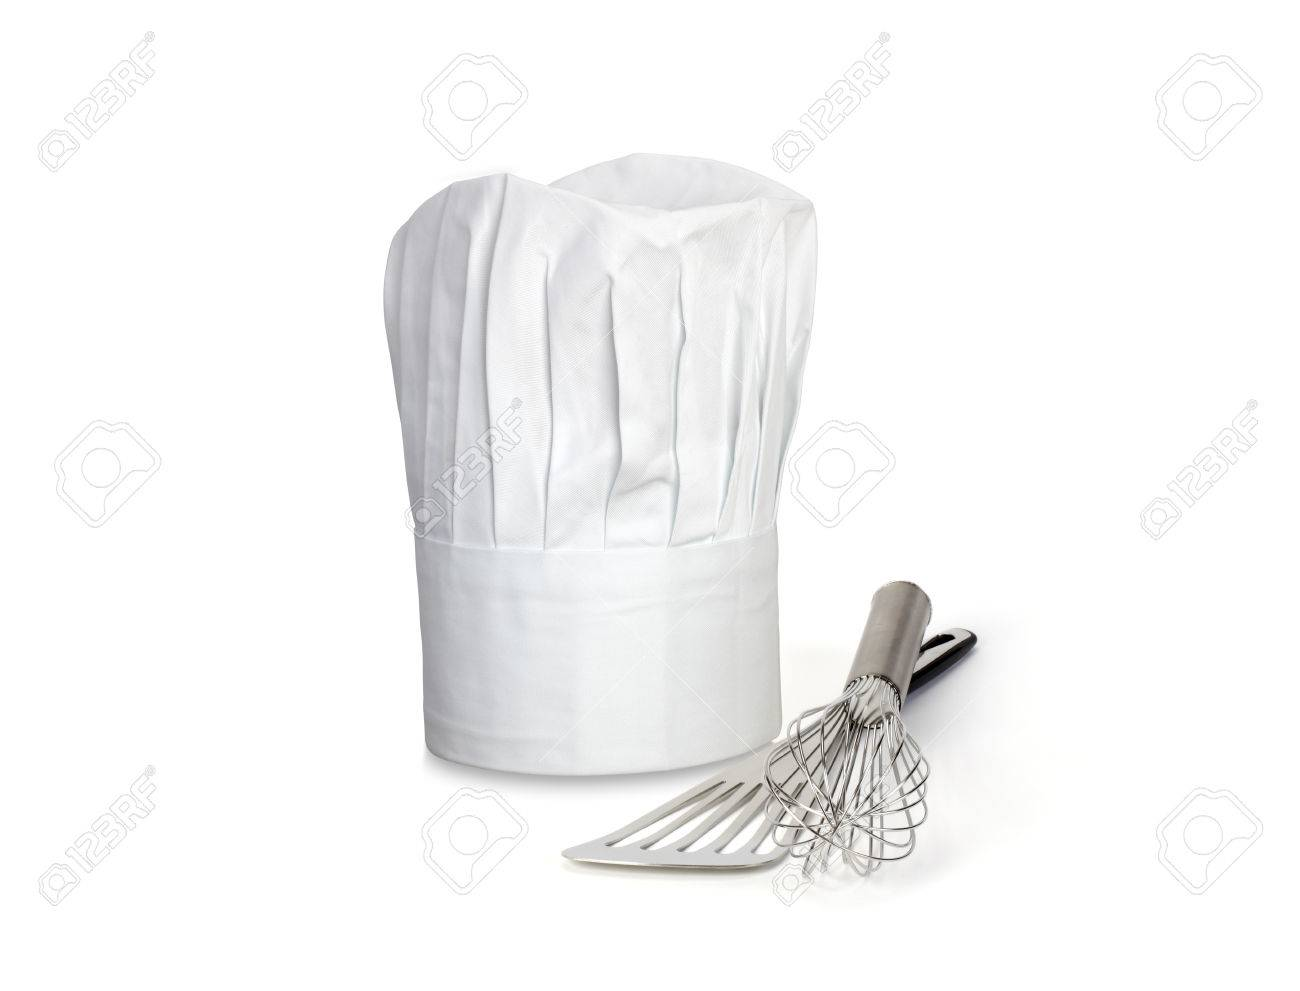 Chef Hat and utensils - 45972429